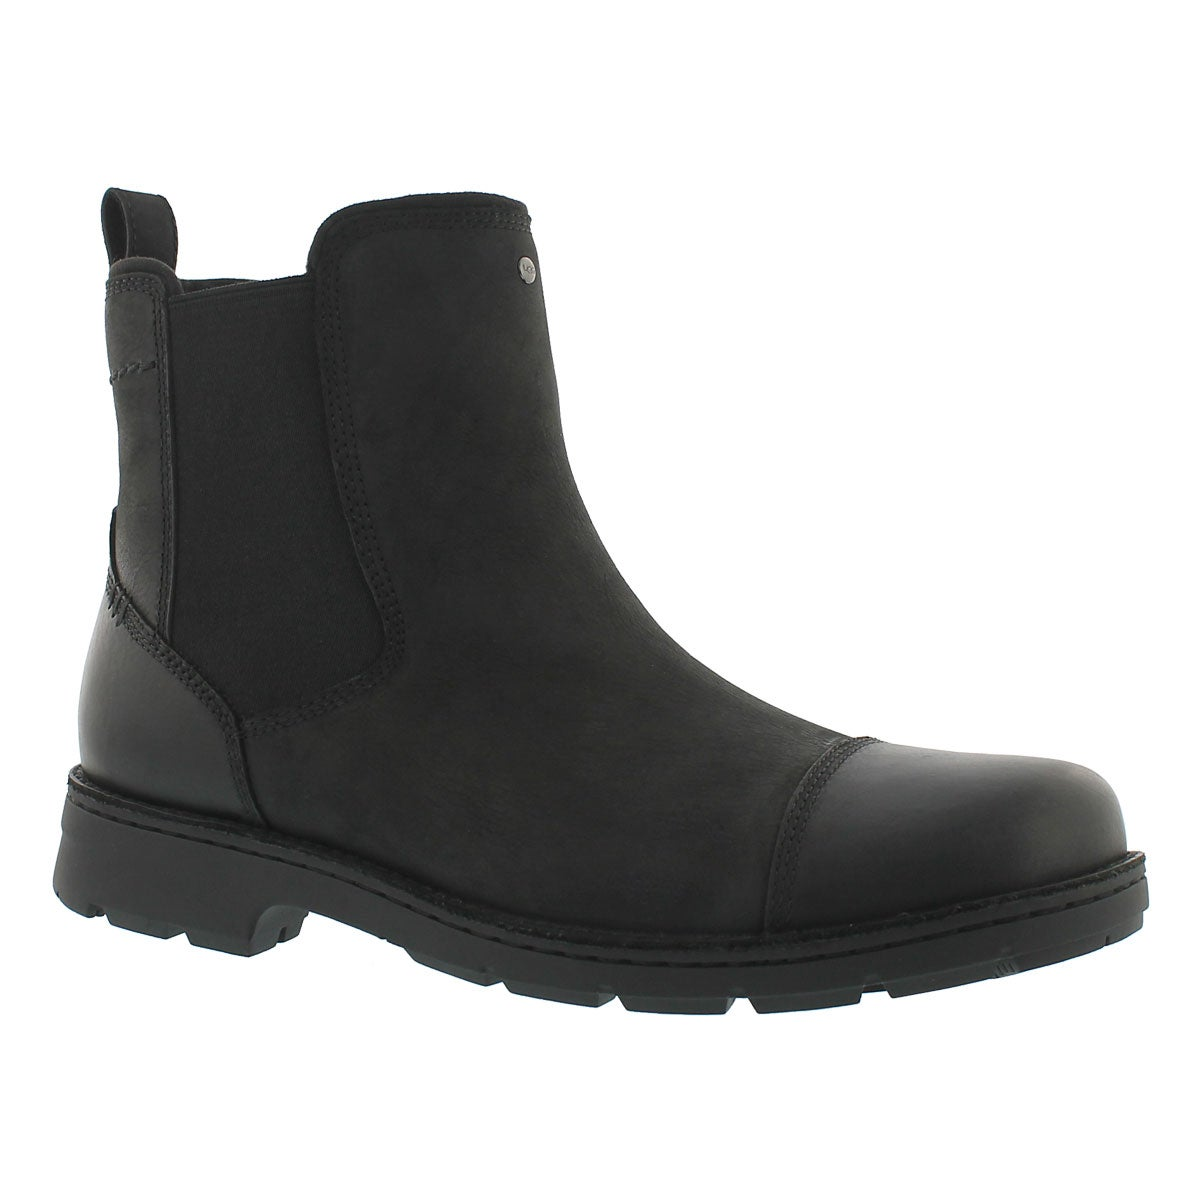 Mns Runyon black lined chelsea boot